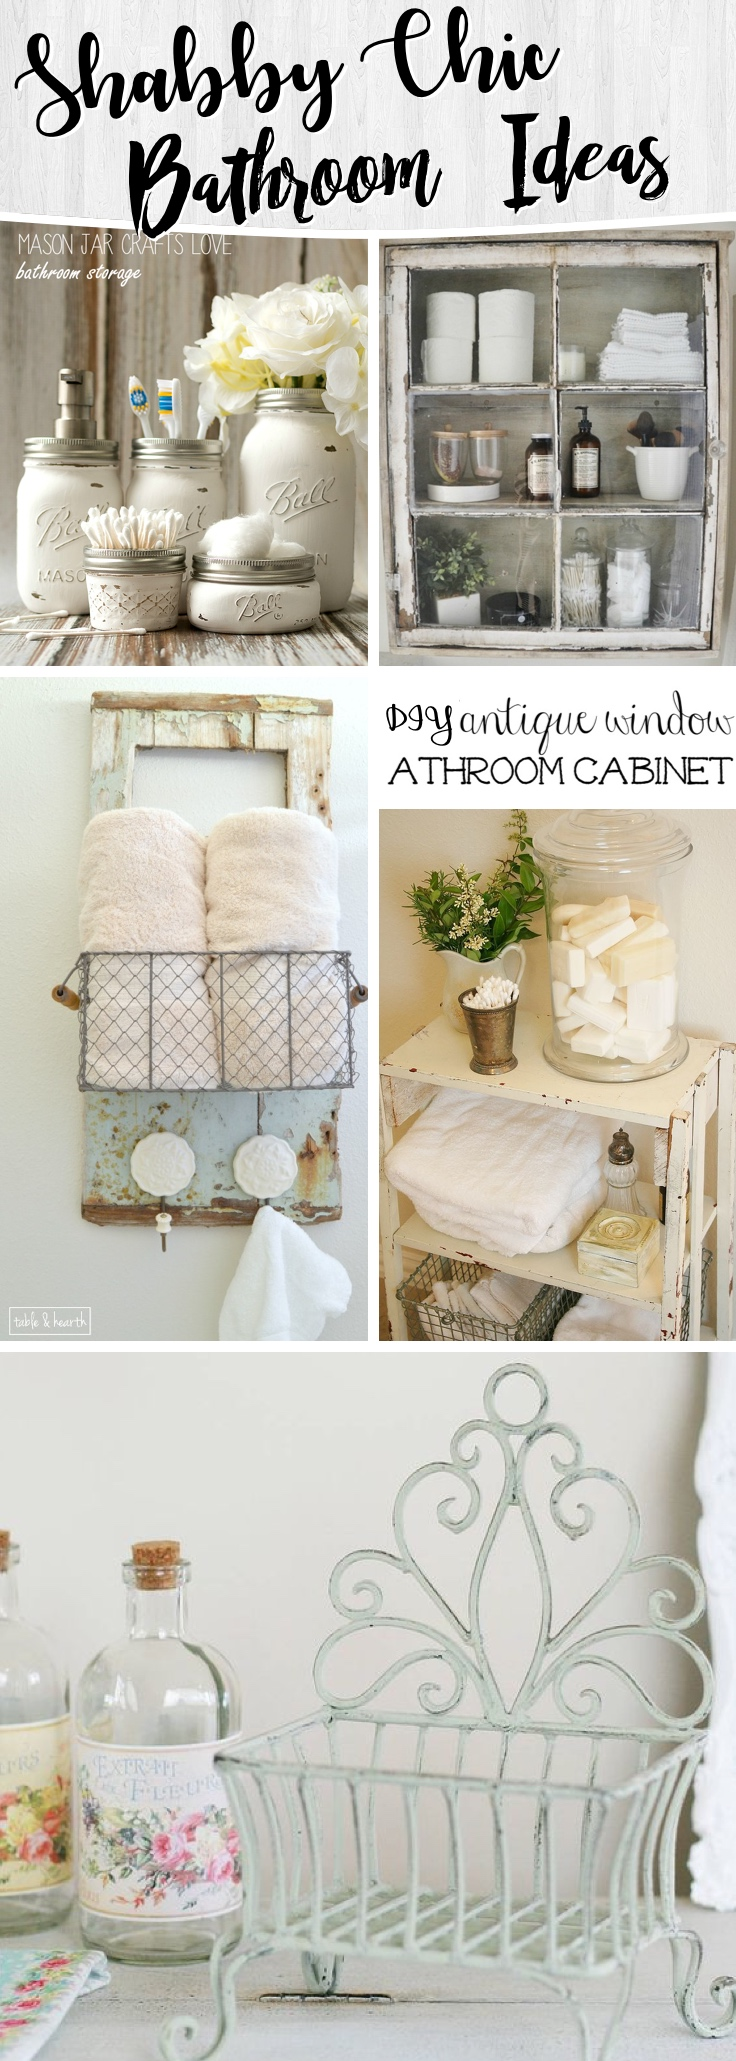 15 shabby chic bathroom ideas transforming your space from simple to classic cute diy projects. Black Bedroom Furniture Sets. Home Design Ideas